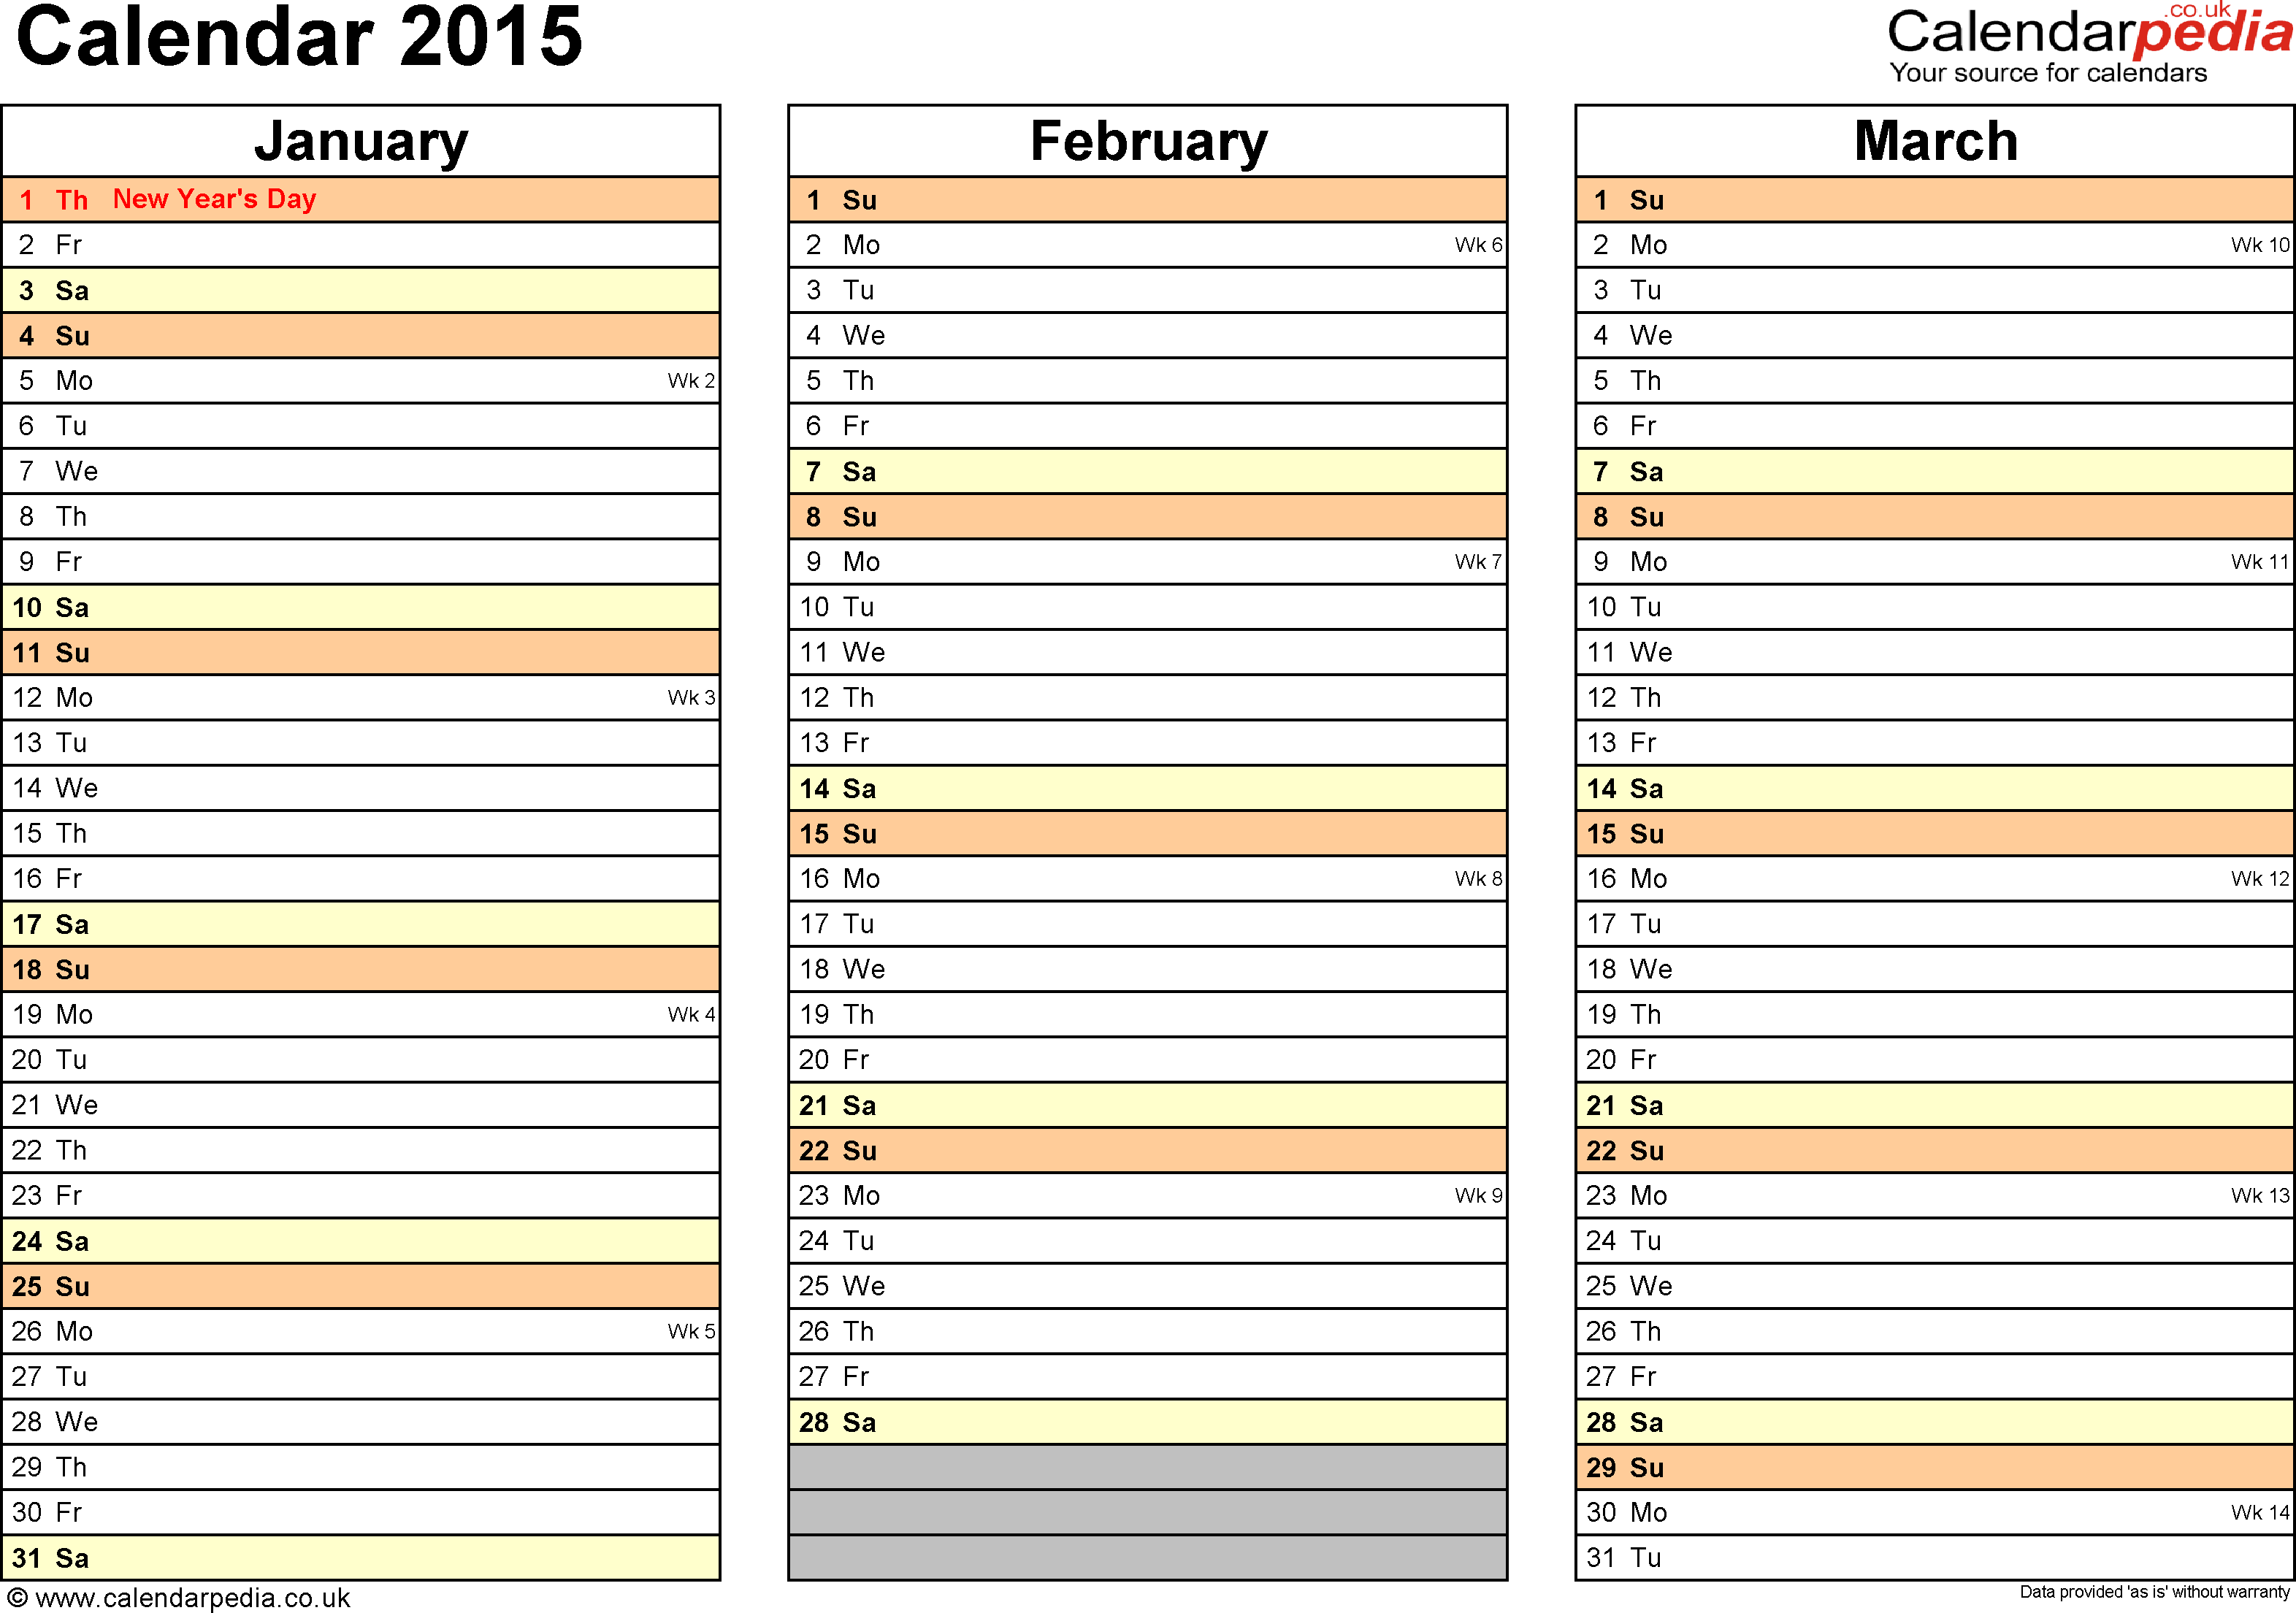 Calendar 2015 (UK) - 16 free printable Word templates